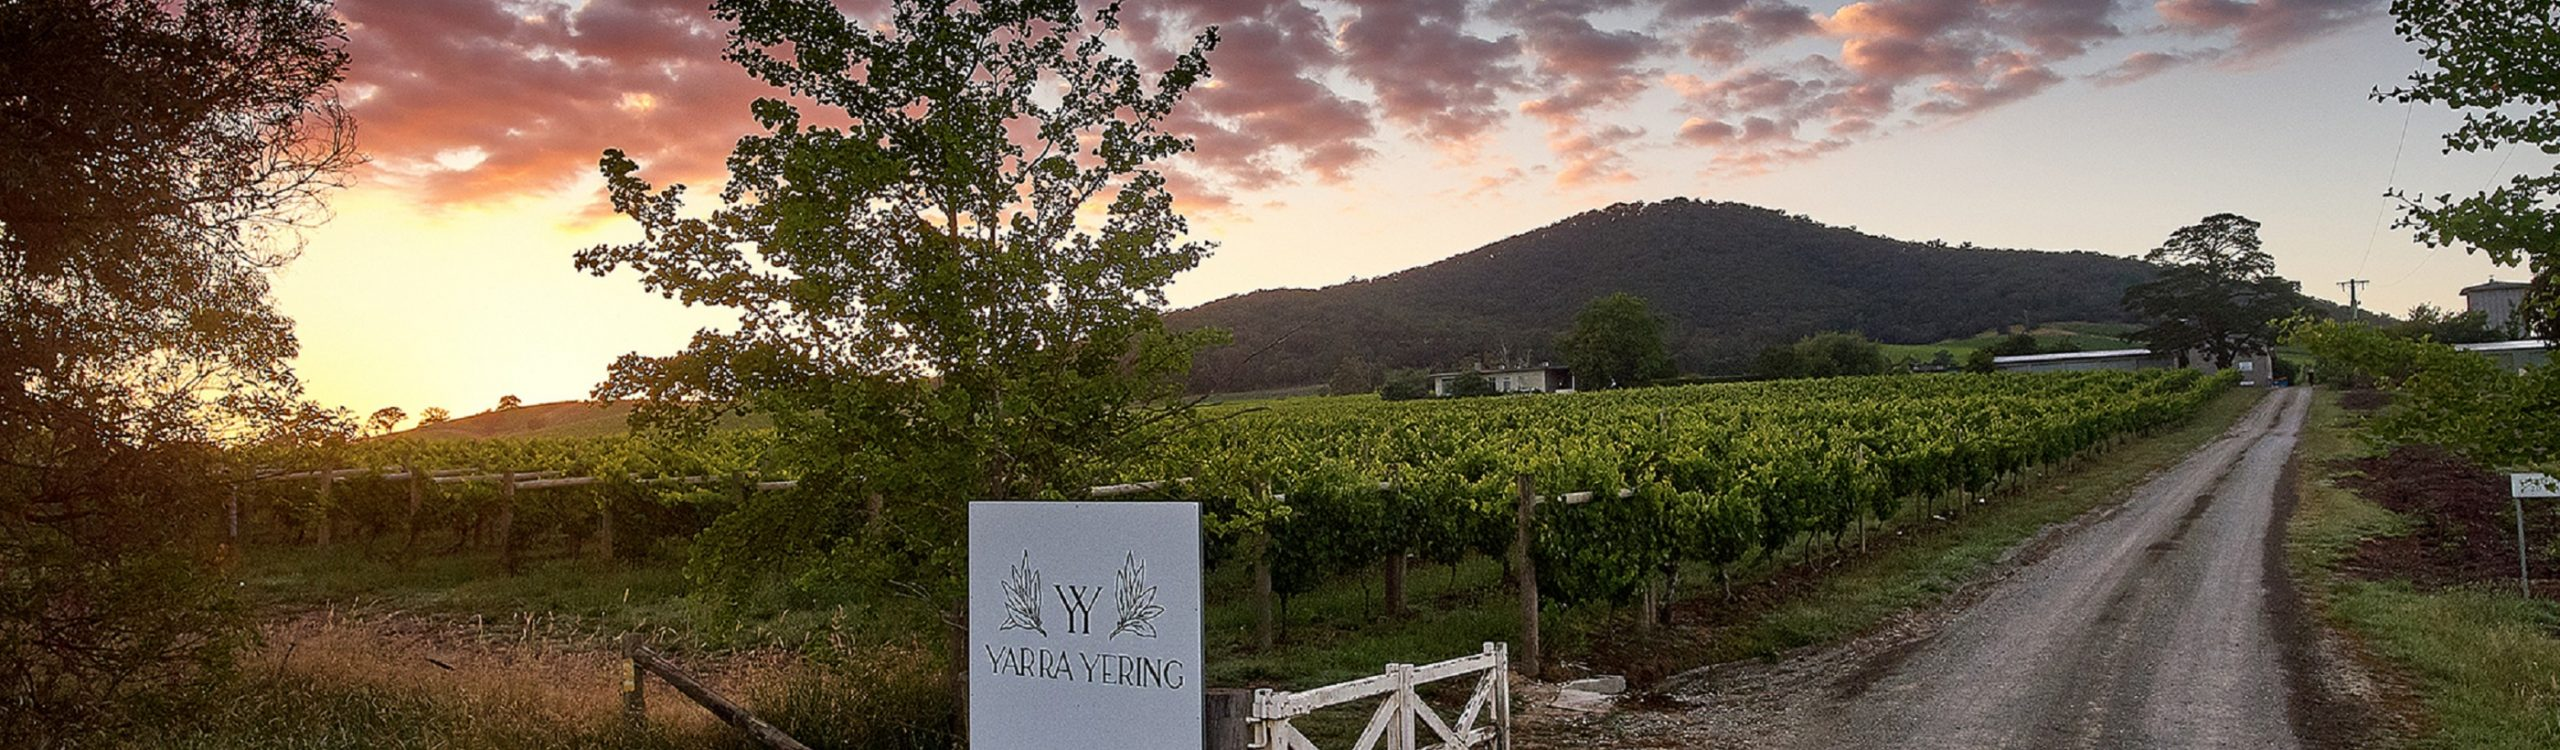 vins Australie yarra yering. South World Wines distribue les vins du monde en France